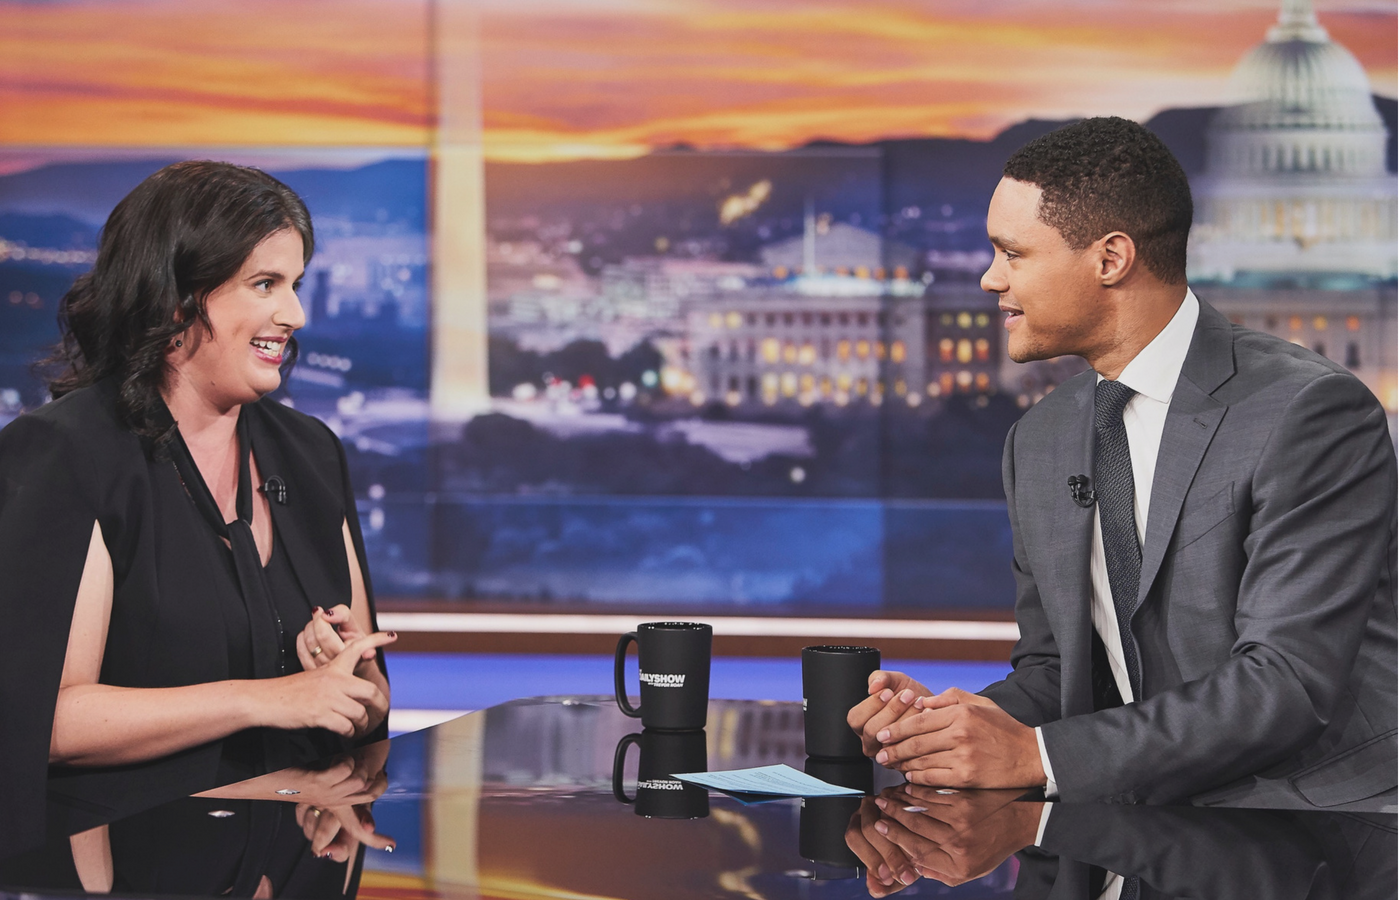 Becca Heller on The Daily Show with Trevor Noah on June 23, 2018